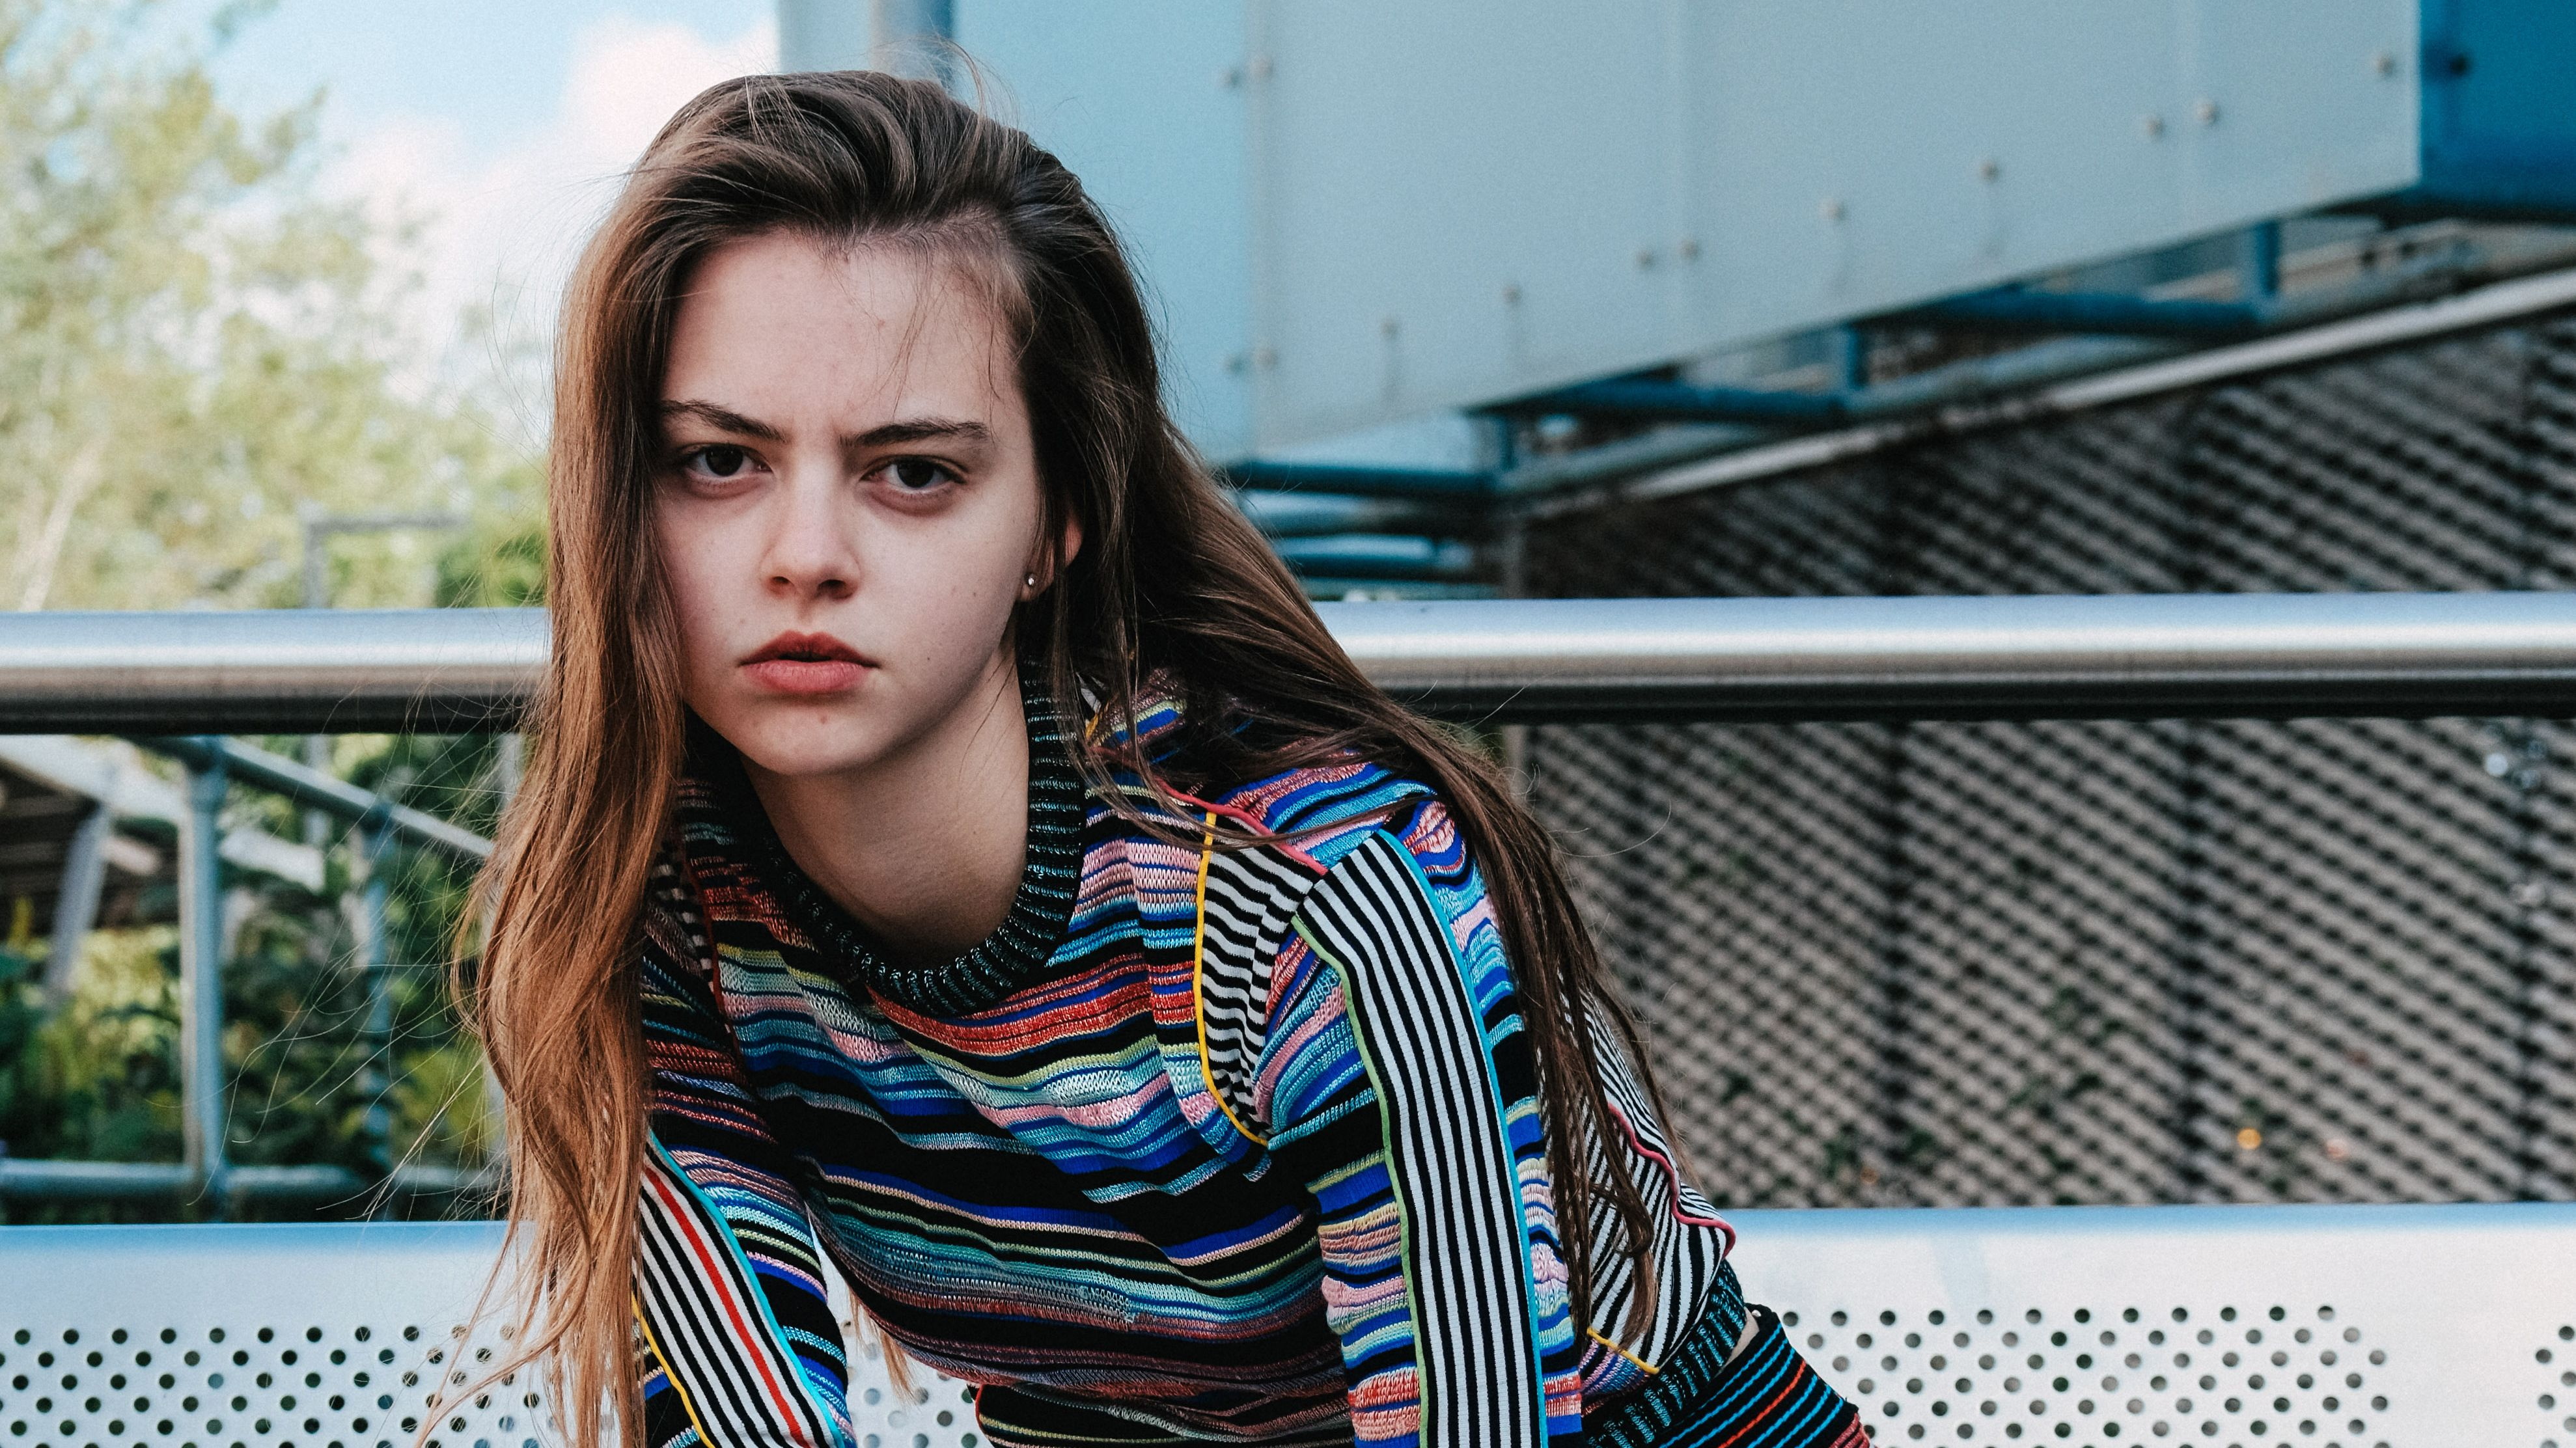 Model wearing garment made of colourful stripey knitted textiles by Priscilla Luong.